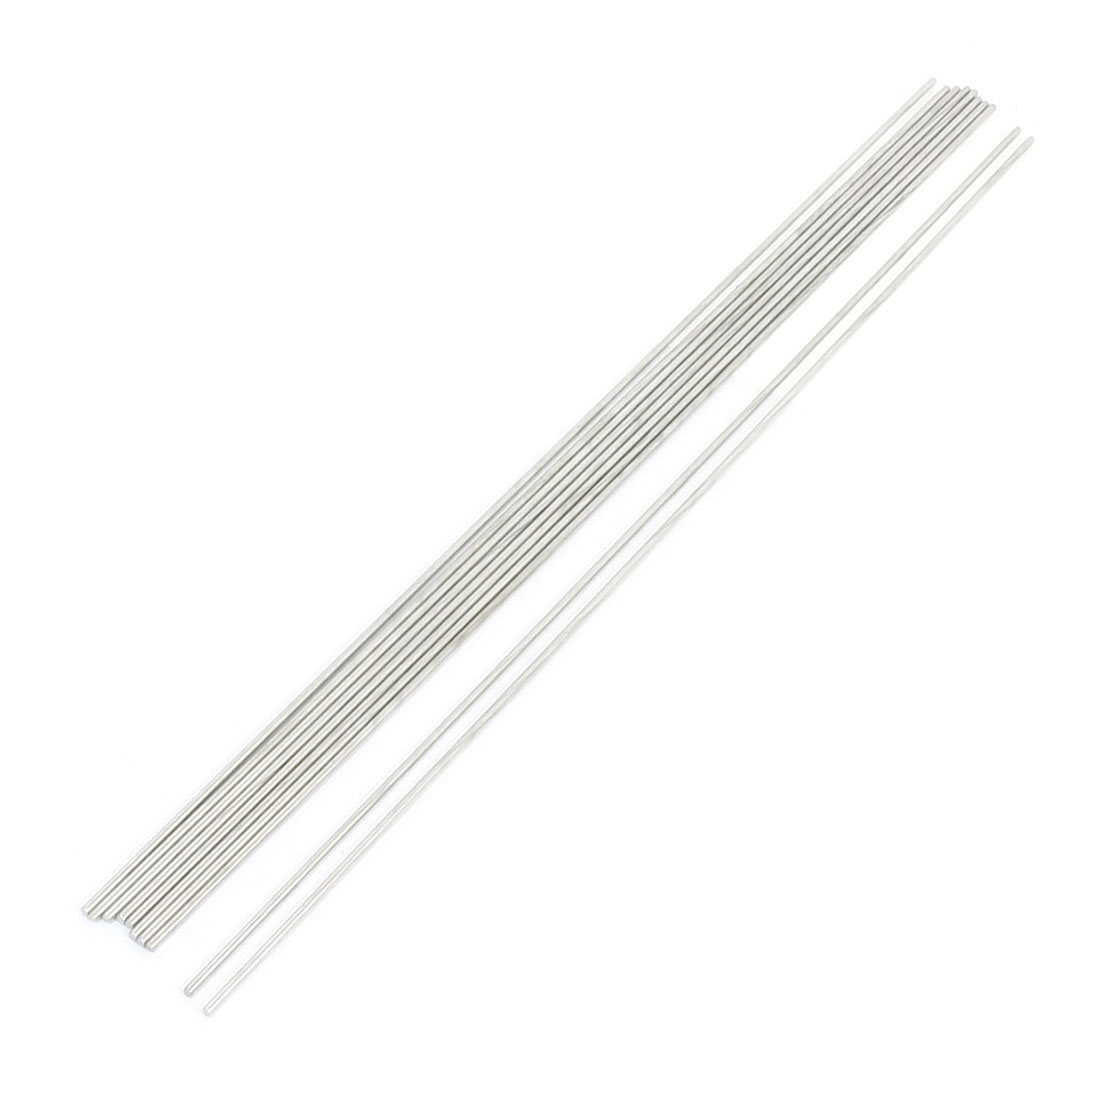 10Pcs RC Airplane Hardware Tool Stainless Steel Round Rod 400mm x 2.5mm